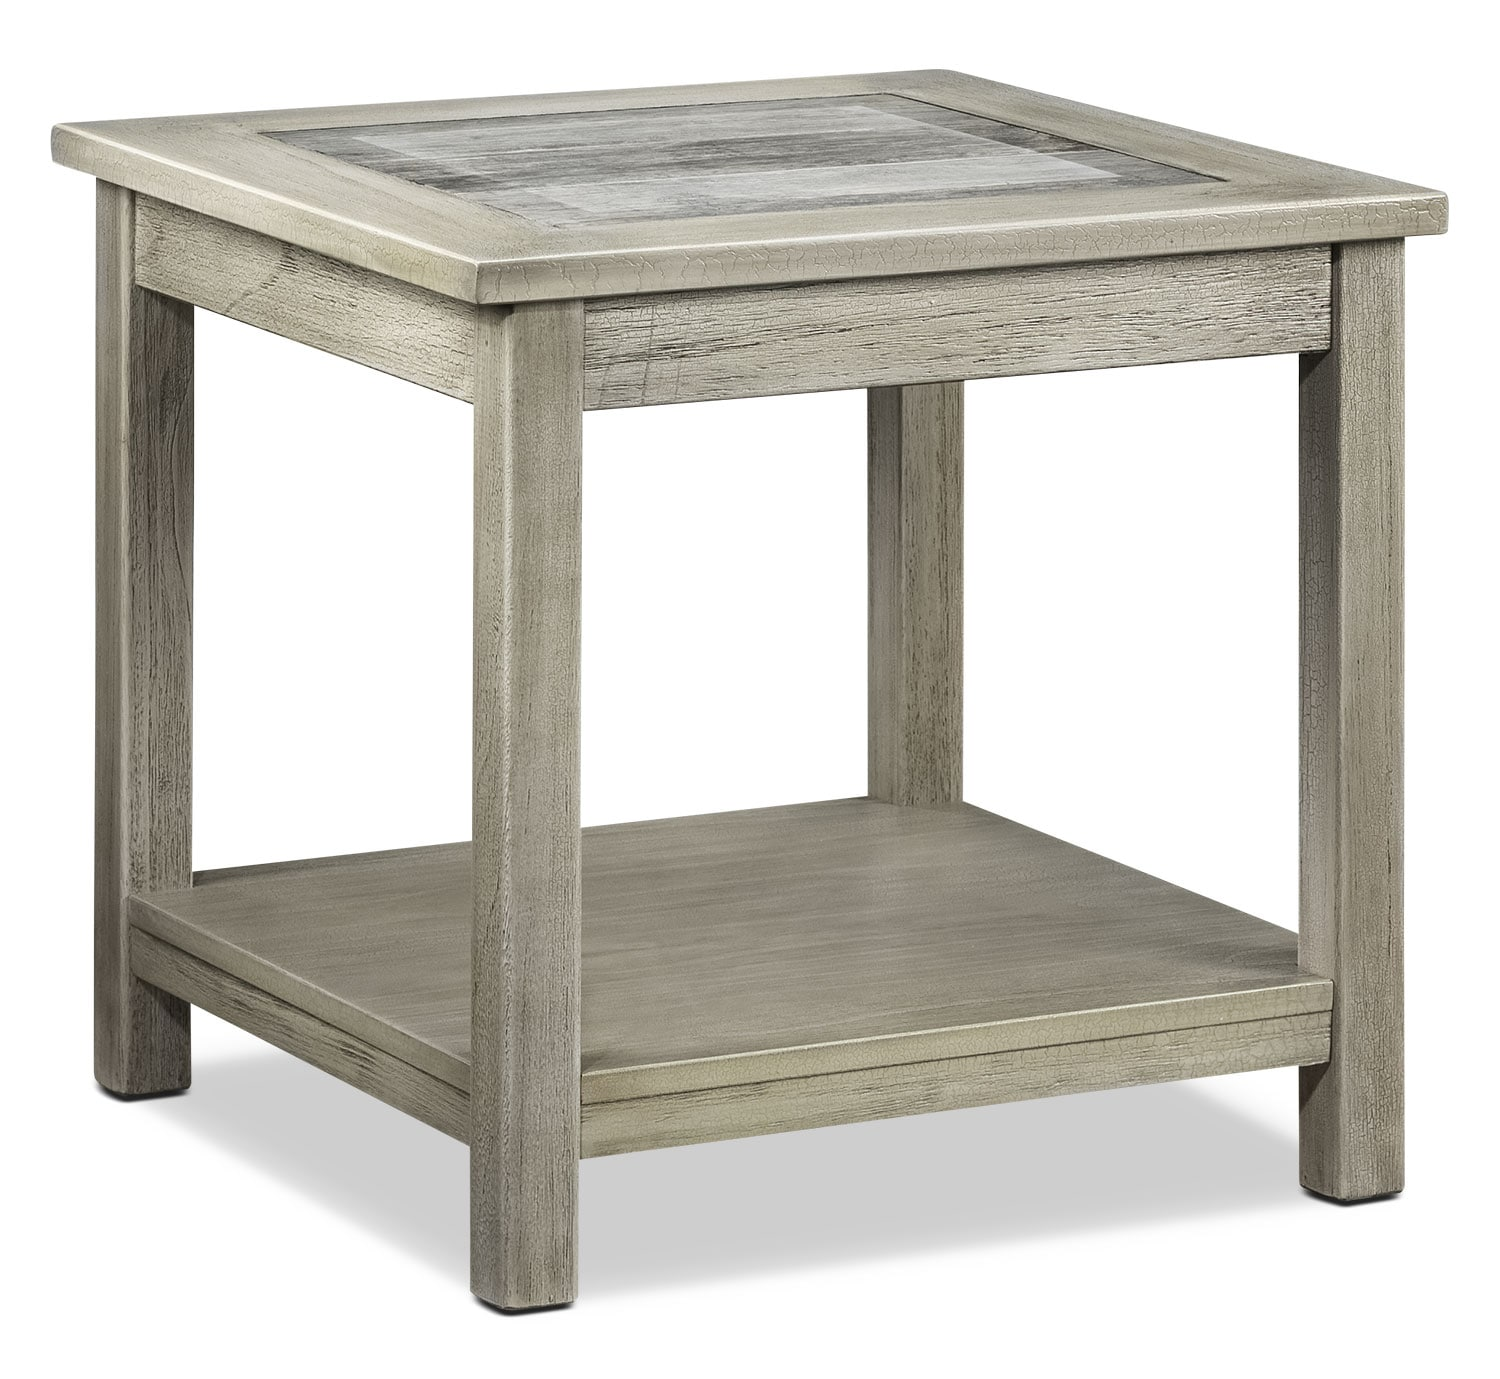 Accent and Occasional Furniture - Thomas End Table - Natural Beige